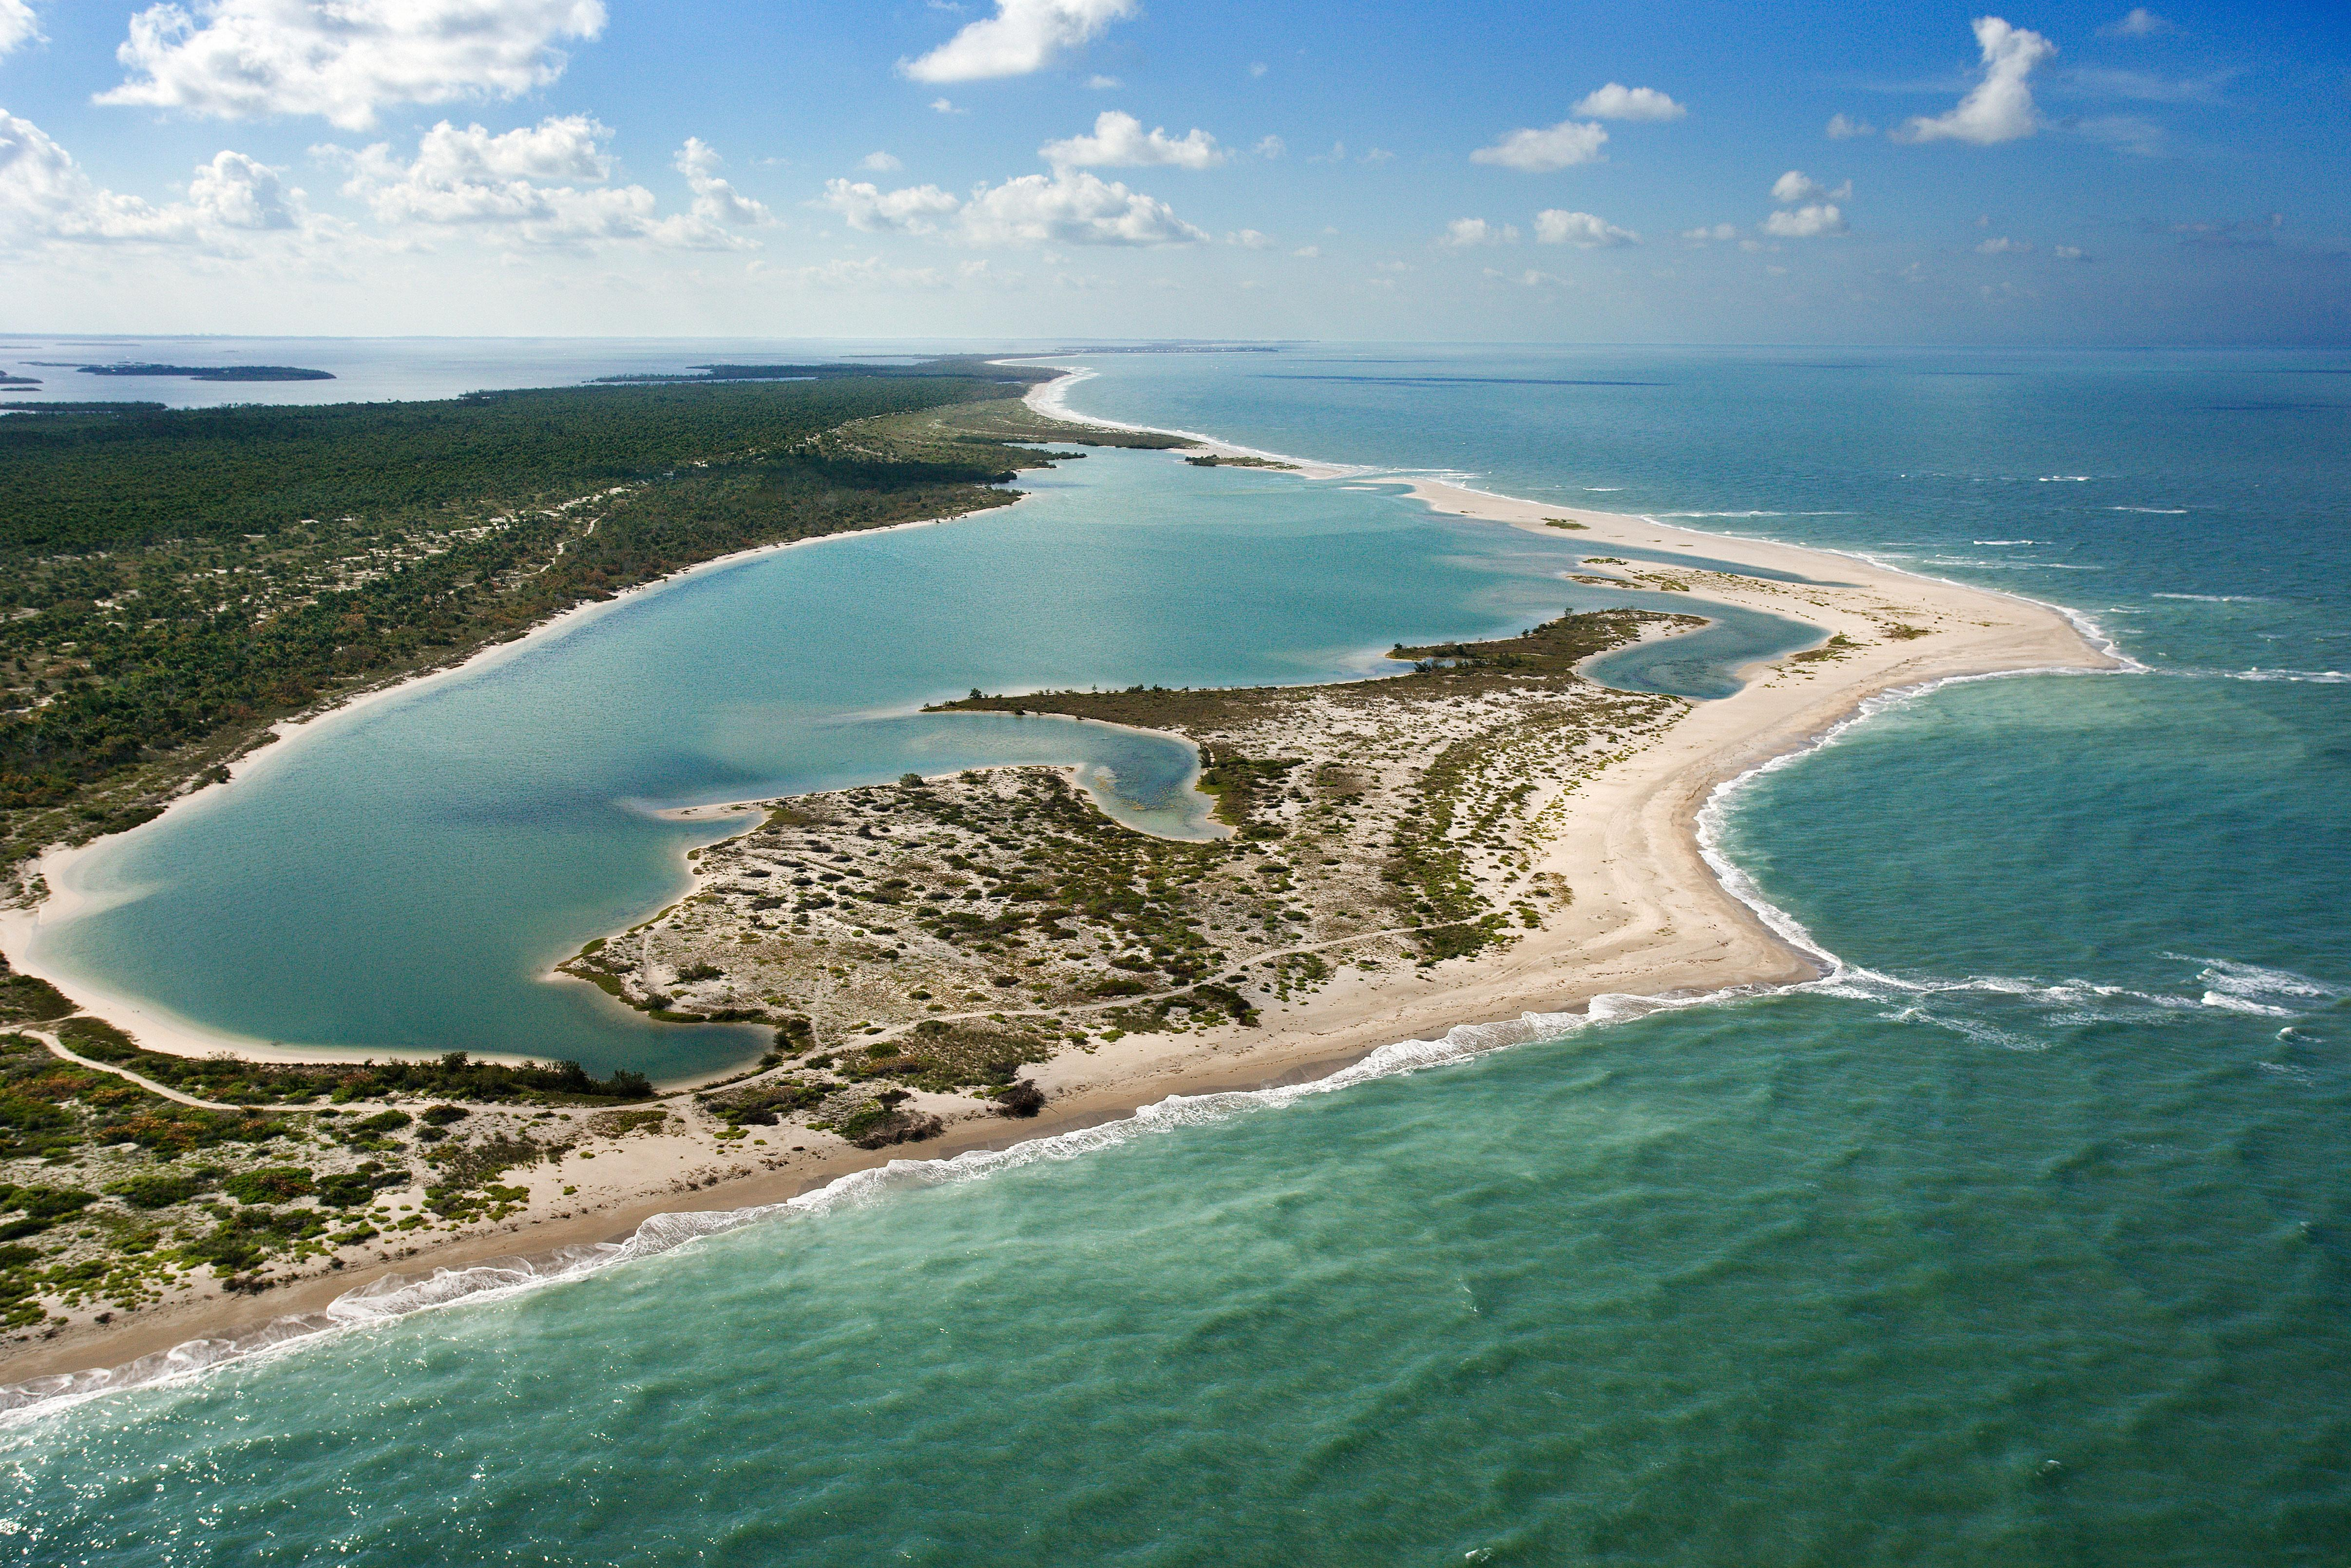 """<p>Only accessible by boat, the trip to <a href=""""https://www.floridastateparks.org/park/Cayo-Costa"""" rel=""""nofollow noopener"""" target=""""_blank"""" data-ylk=""""slk:Cayo Costa State Park"""" class=""""link rapid-noclick-resp"""">Cayo Costa State Park</a>—by ferry from Captiva Island, Punta Gorda, Boca Grande, and Pine Island—is part of the adventure. There's a good chance you'll spot manatees or porpoises in their natural habitat, as you set your eyes on the quiet barrier island. With nine miles of beautiful beaches, mangrove swamps, and acres of pine forests, there's no shortage of swimming, snorkeling, fishing, shelling, and kayaking (rentals are available from the ranger station). Overnight options are charmingly rustic: Choose from one of the 12 one-room cabins, which sleep six each (some have small screened porches); 30 tent camping sites; and slips for private boats. </p>"""